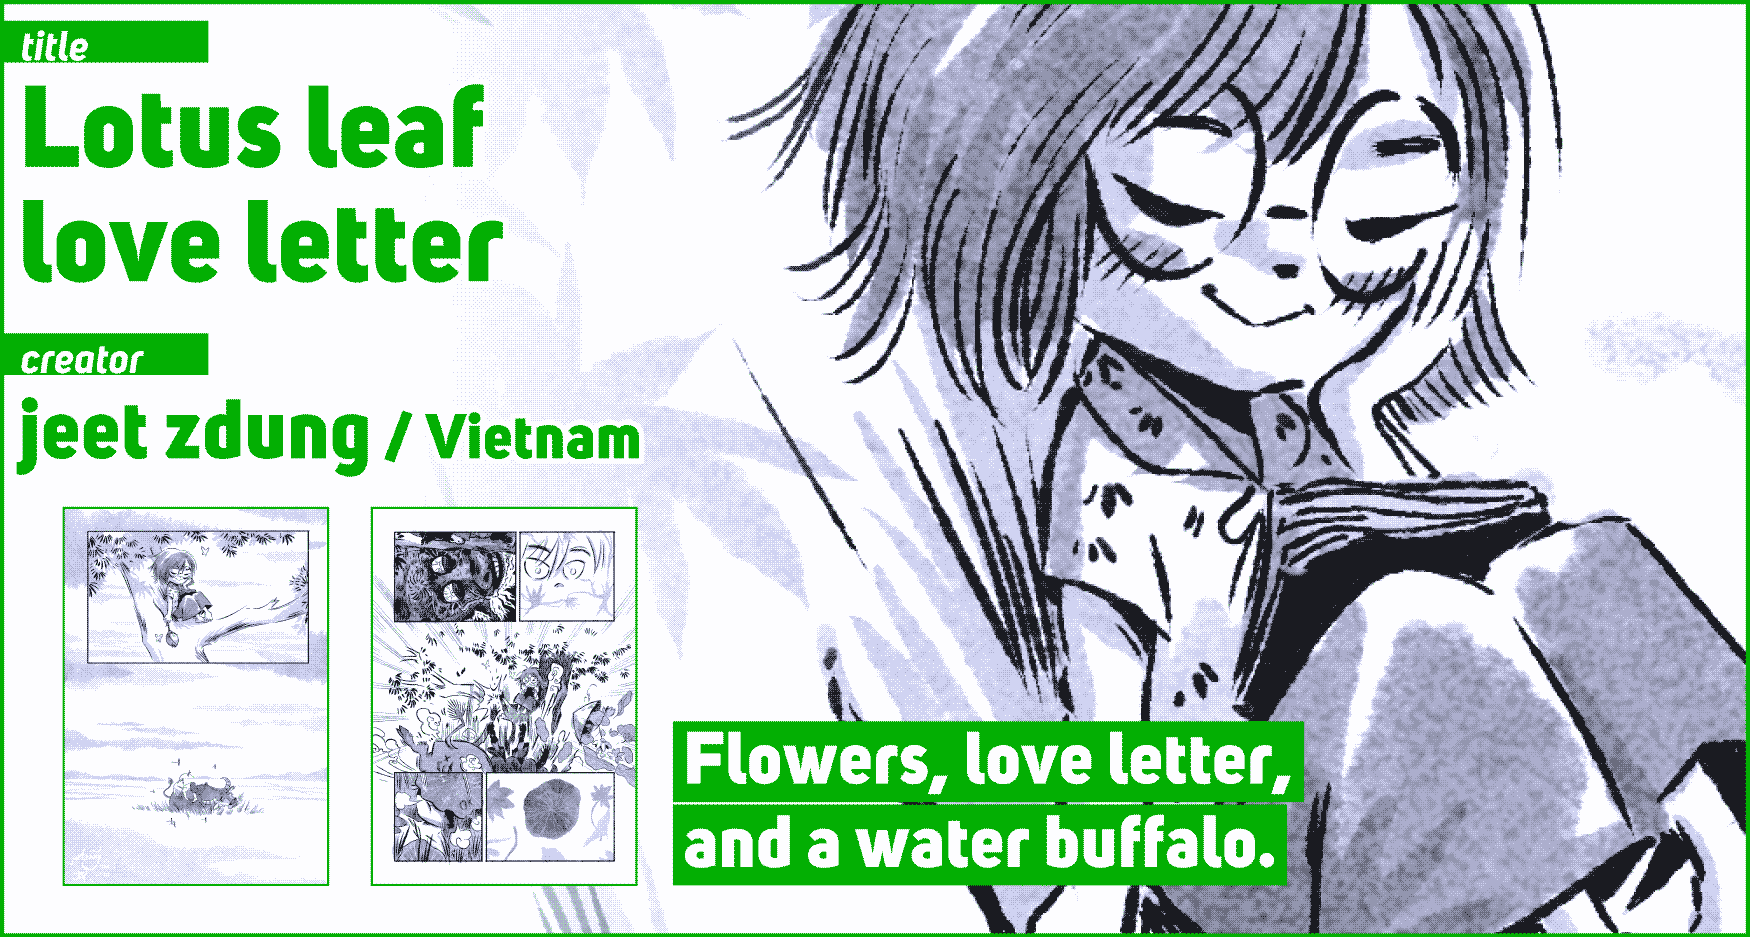 Lotus leaf love letter